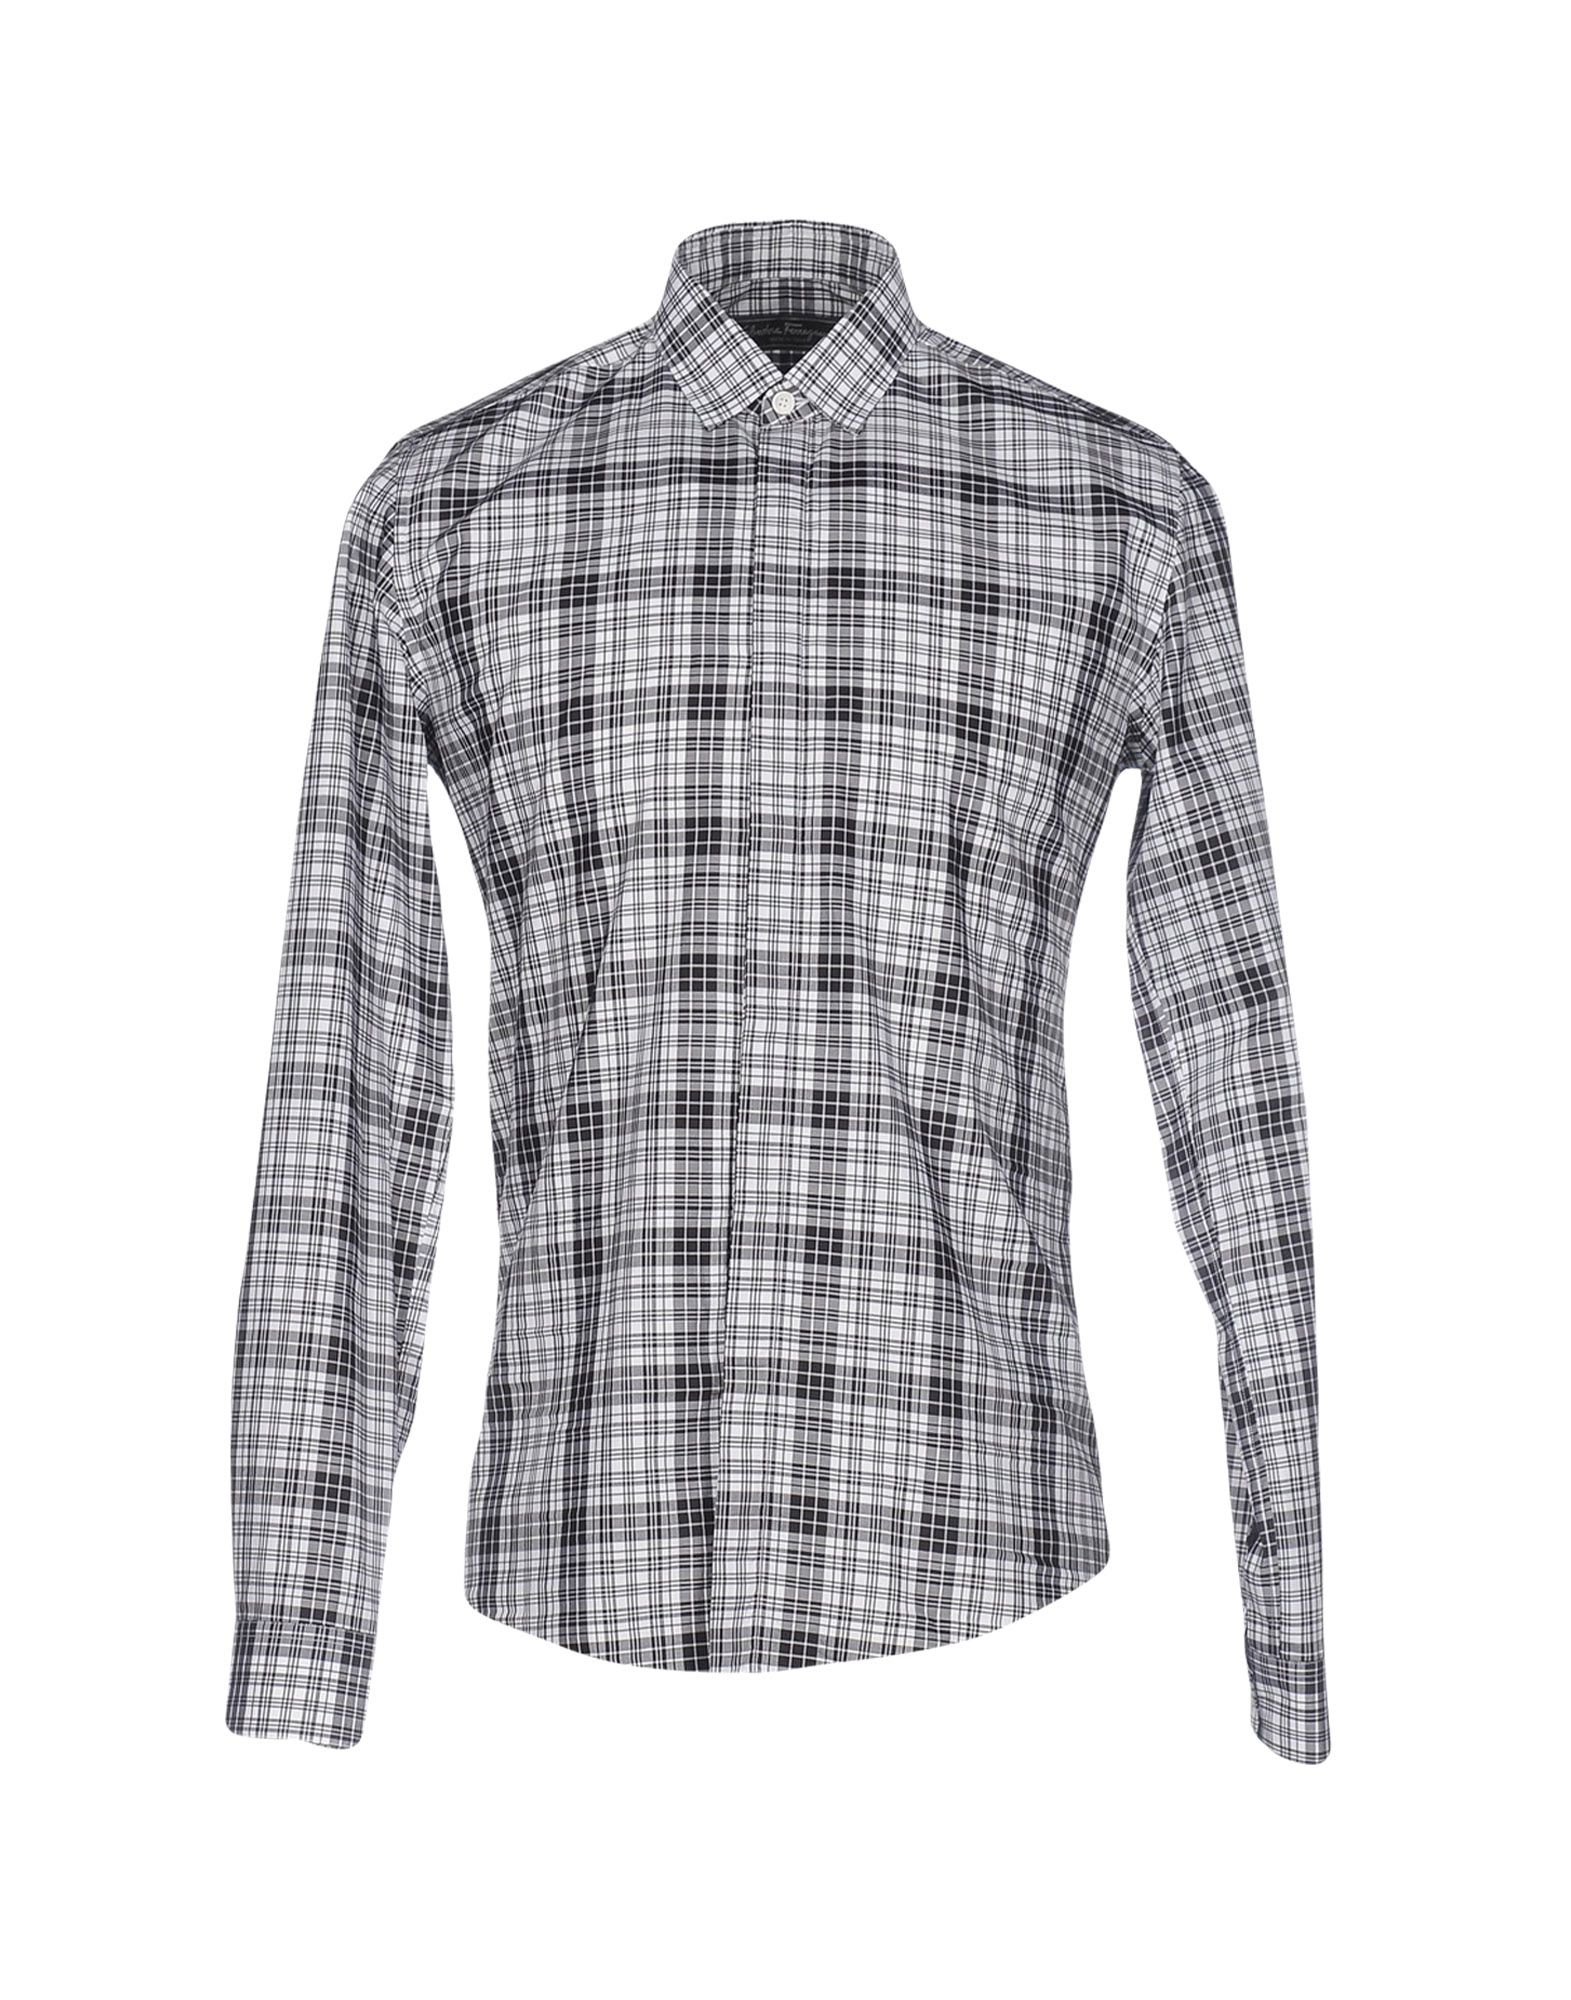 SALVATORE FERRAGAMO Shirts